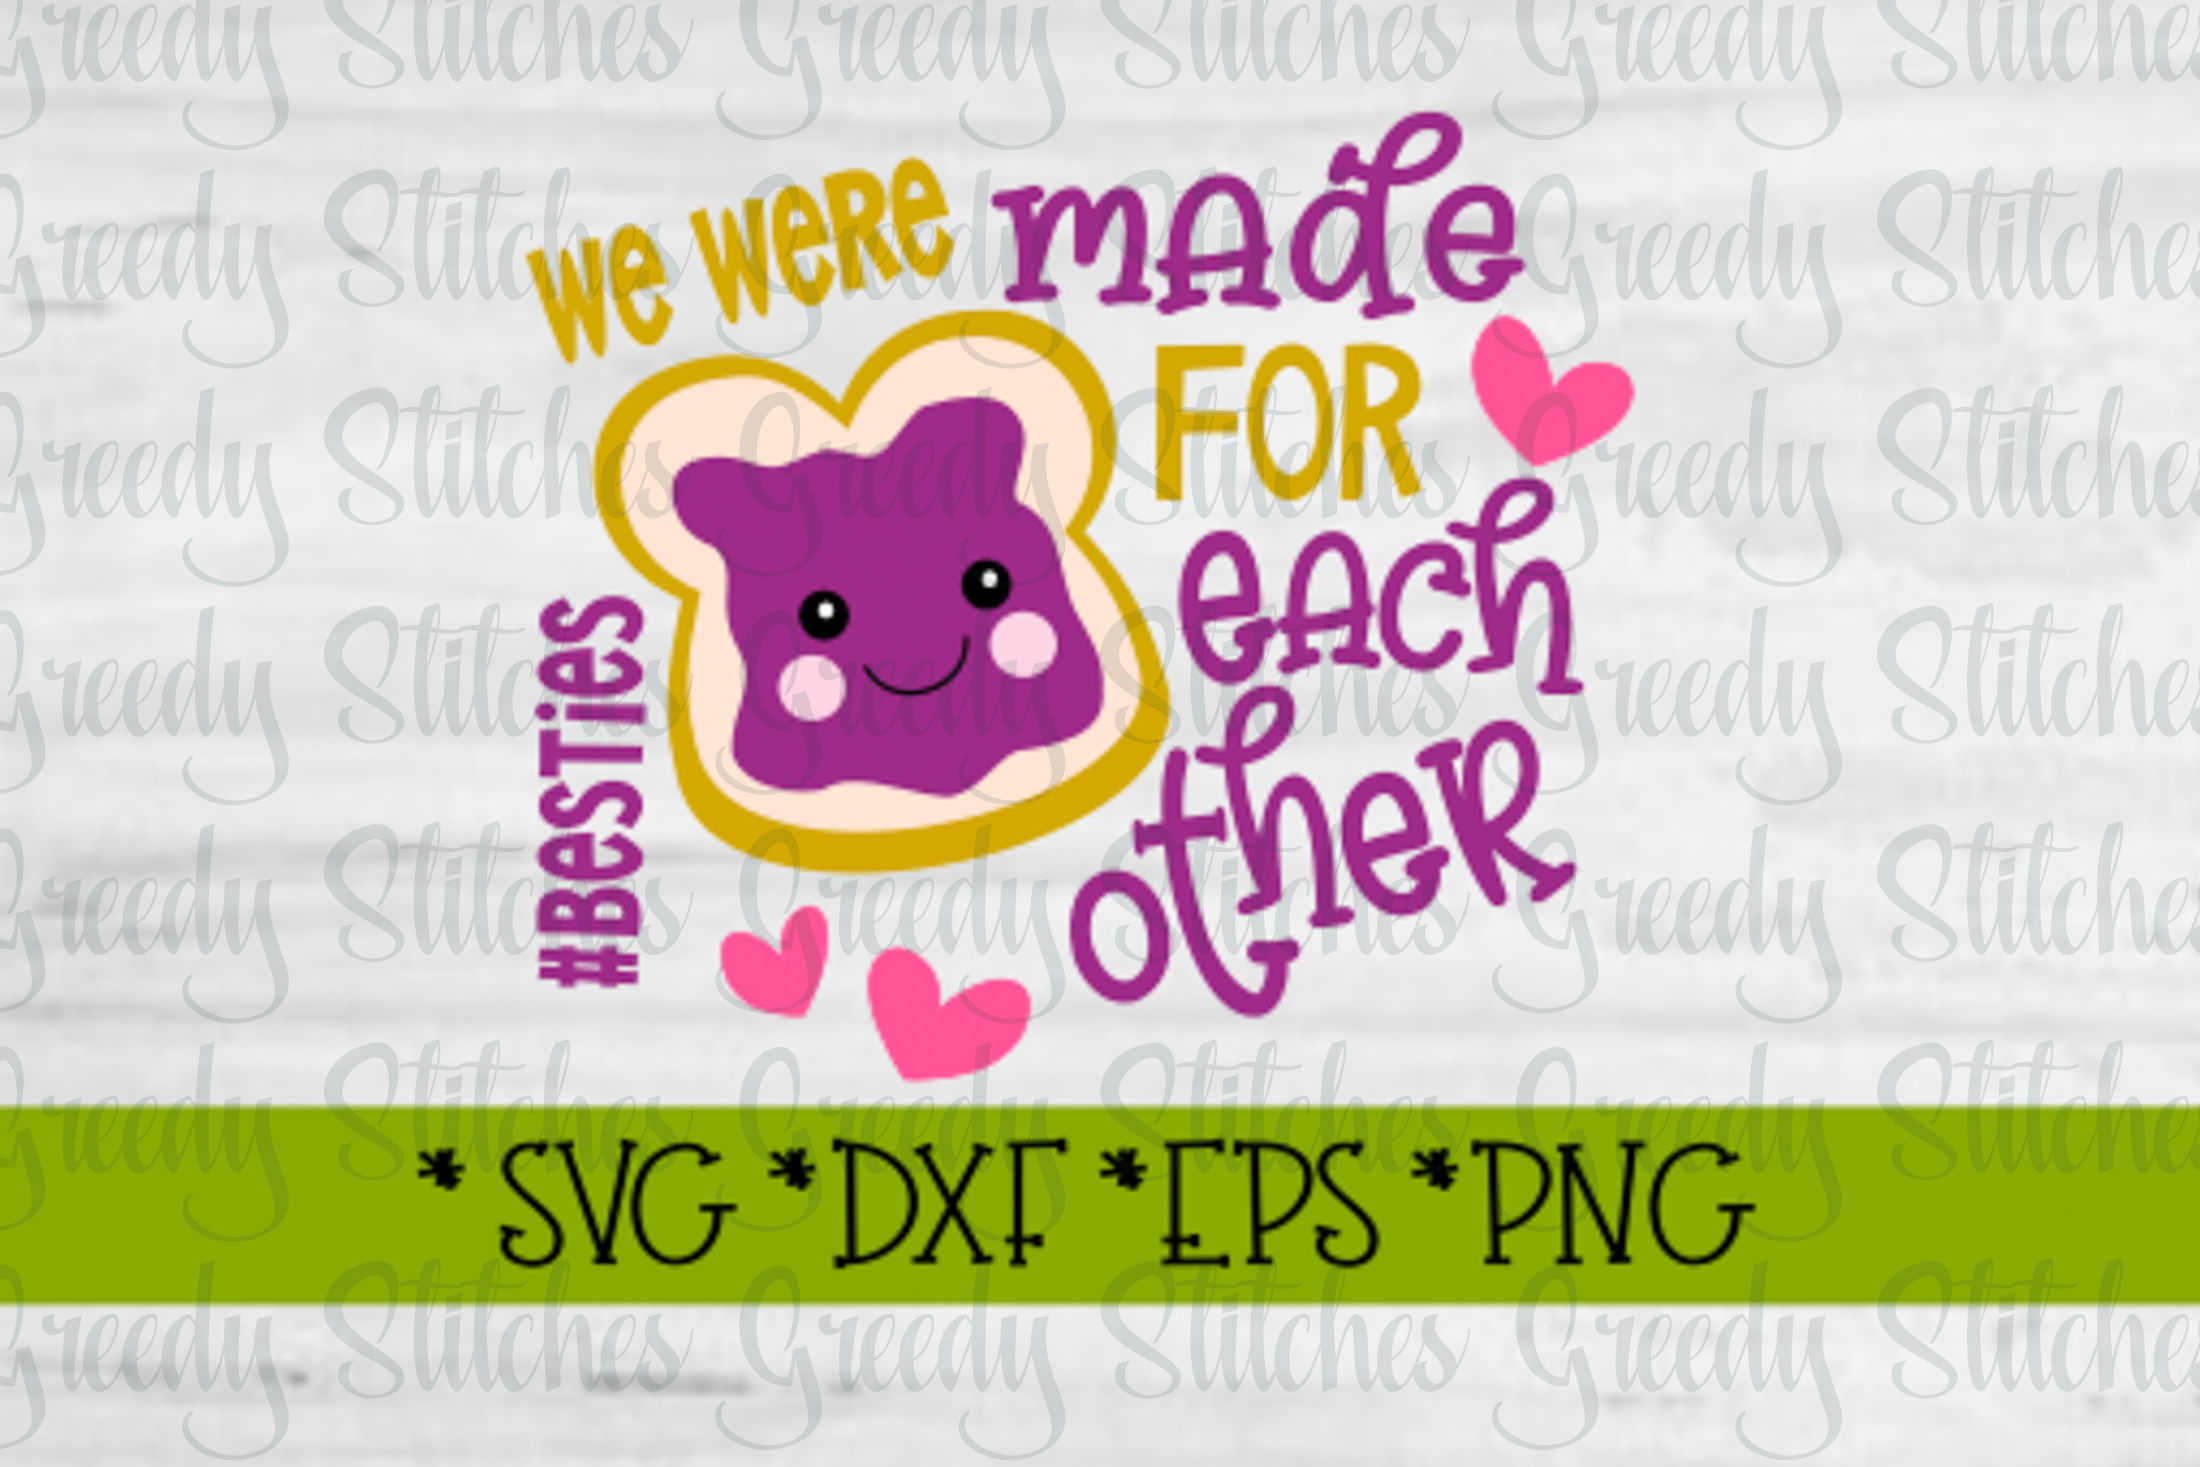 Peanut Butter & Jelly SVG DXF EPS PNG | Best Friends SVG DXF example image 17